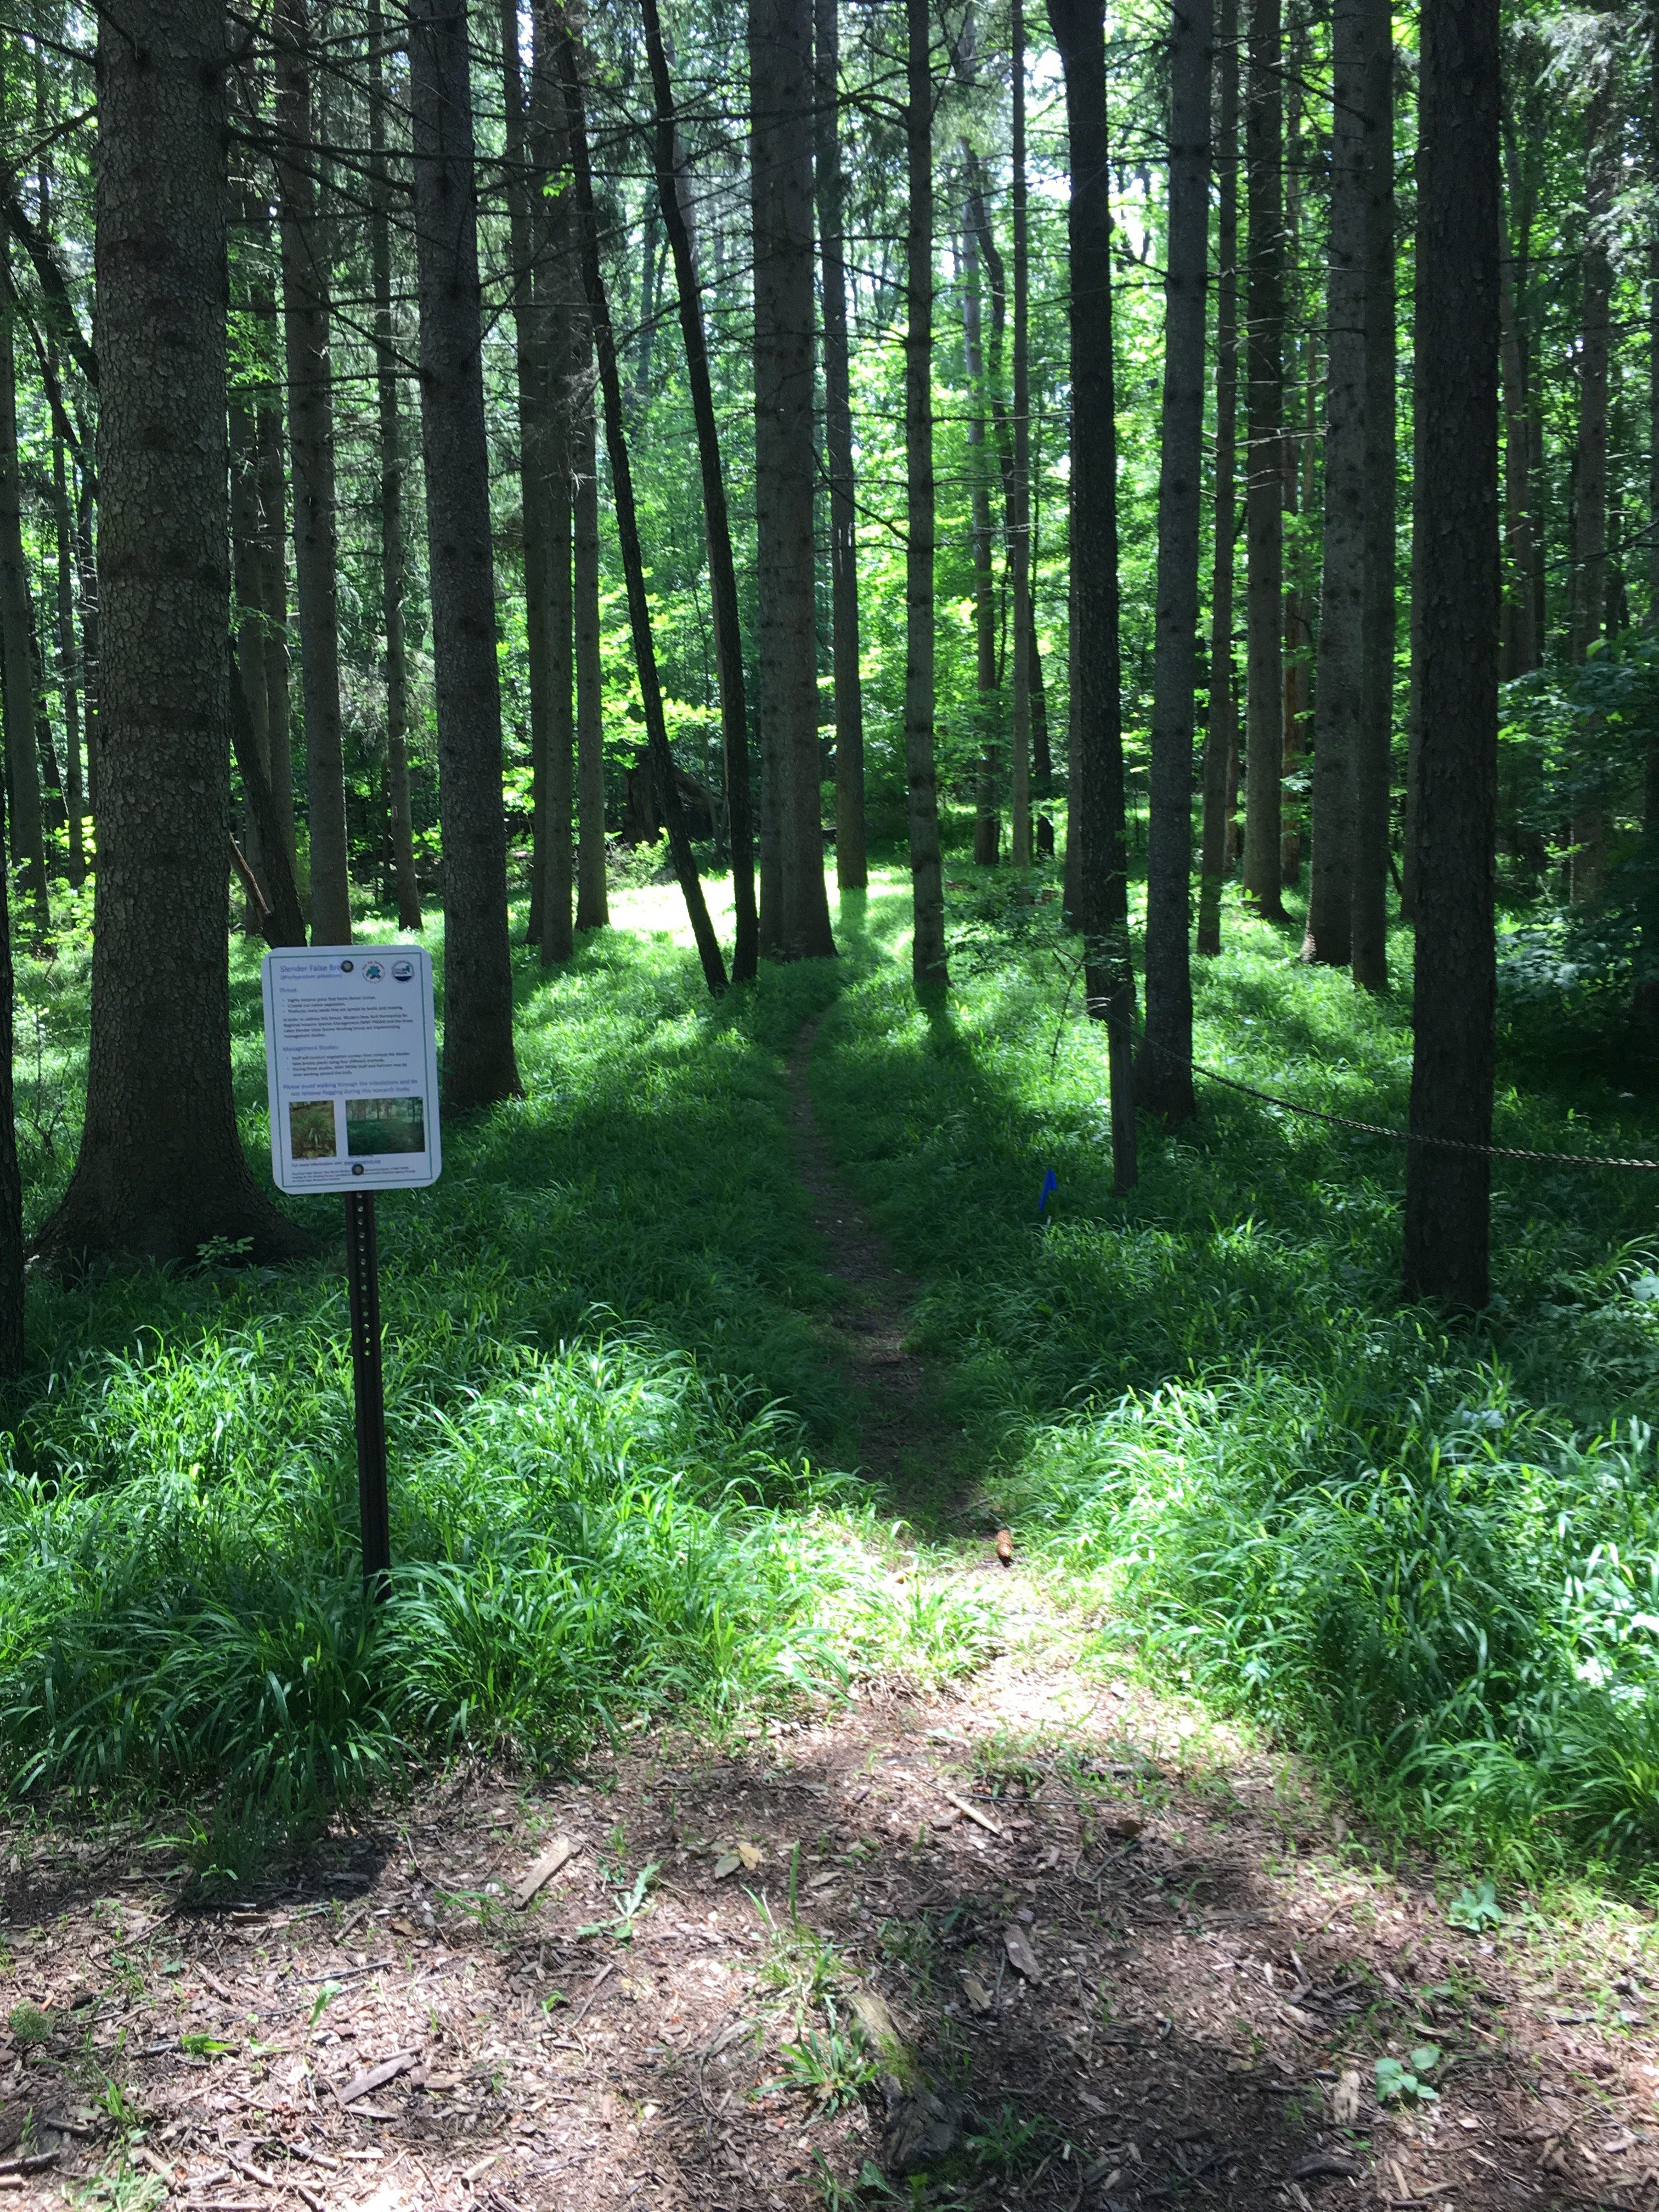 Genesee County Park and Forest Pre-Treatment, 2018